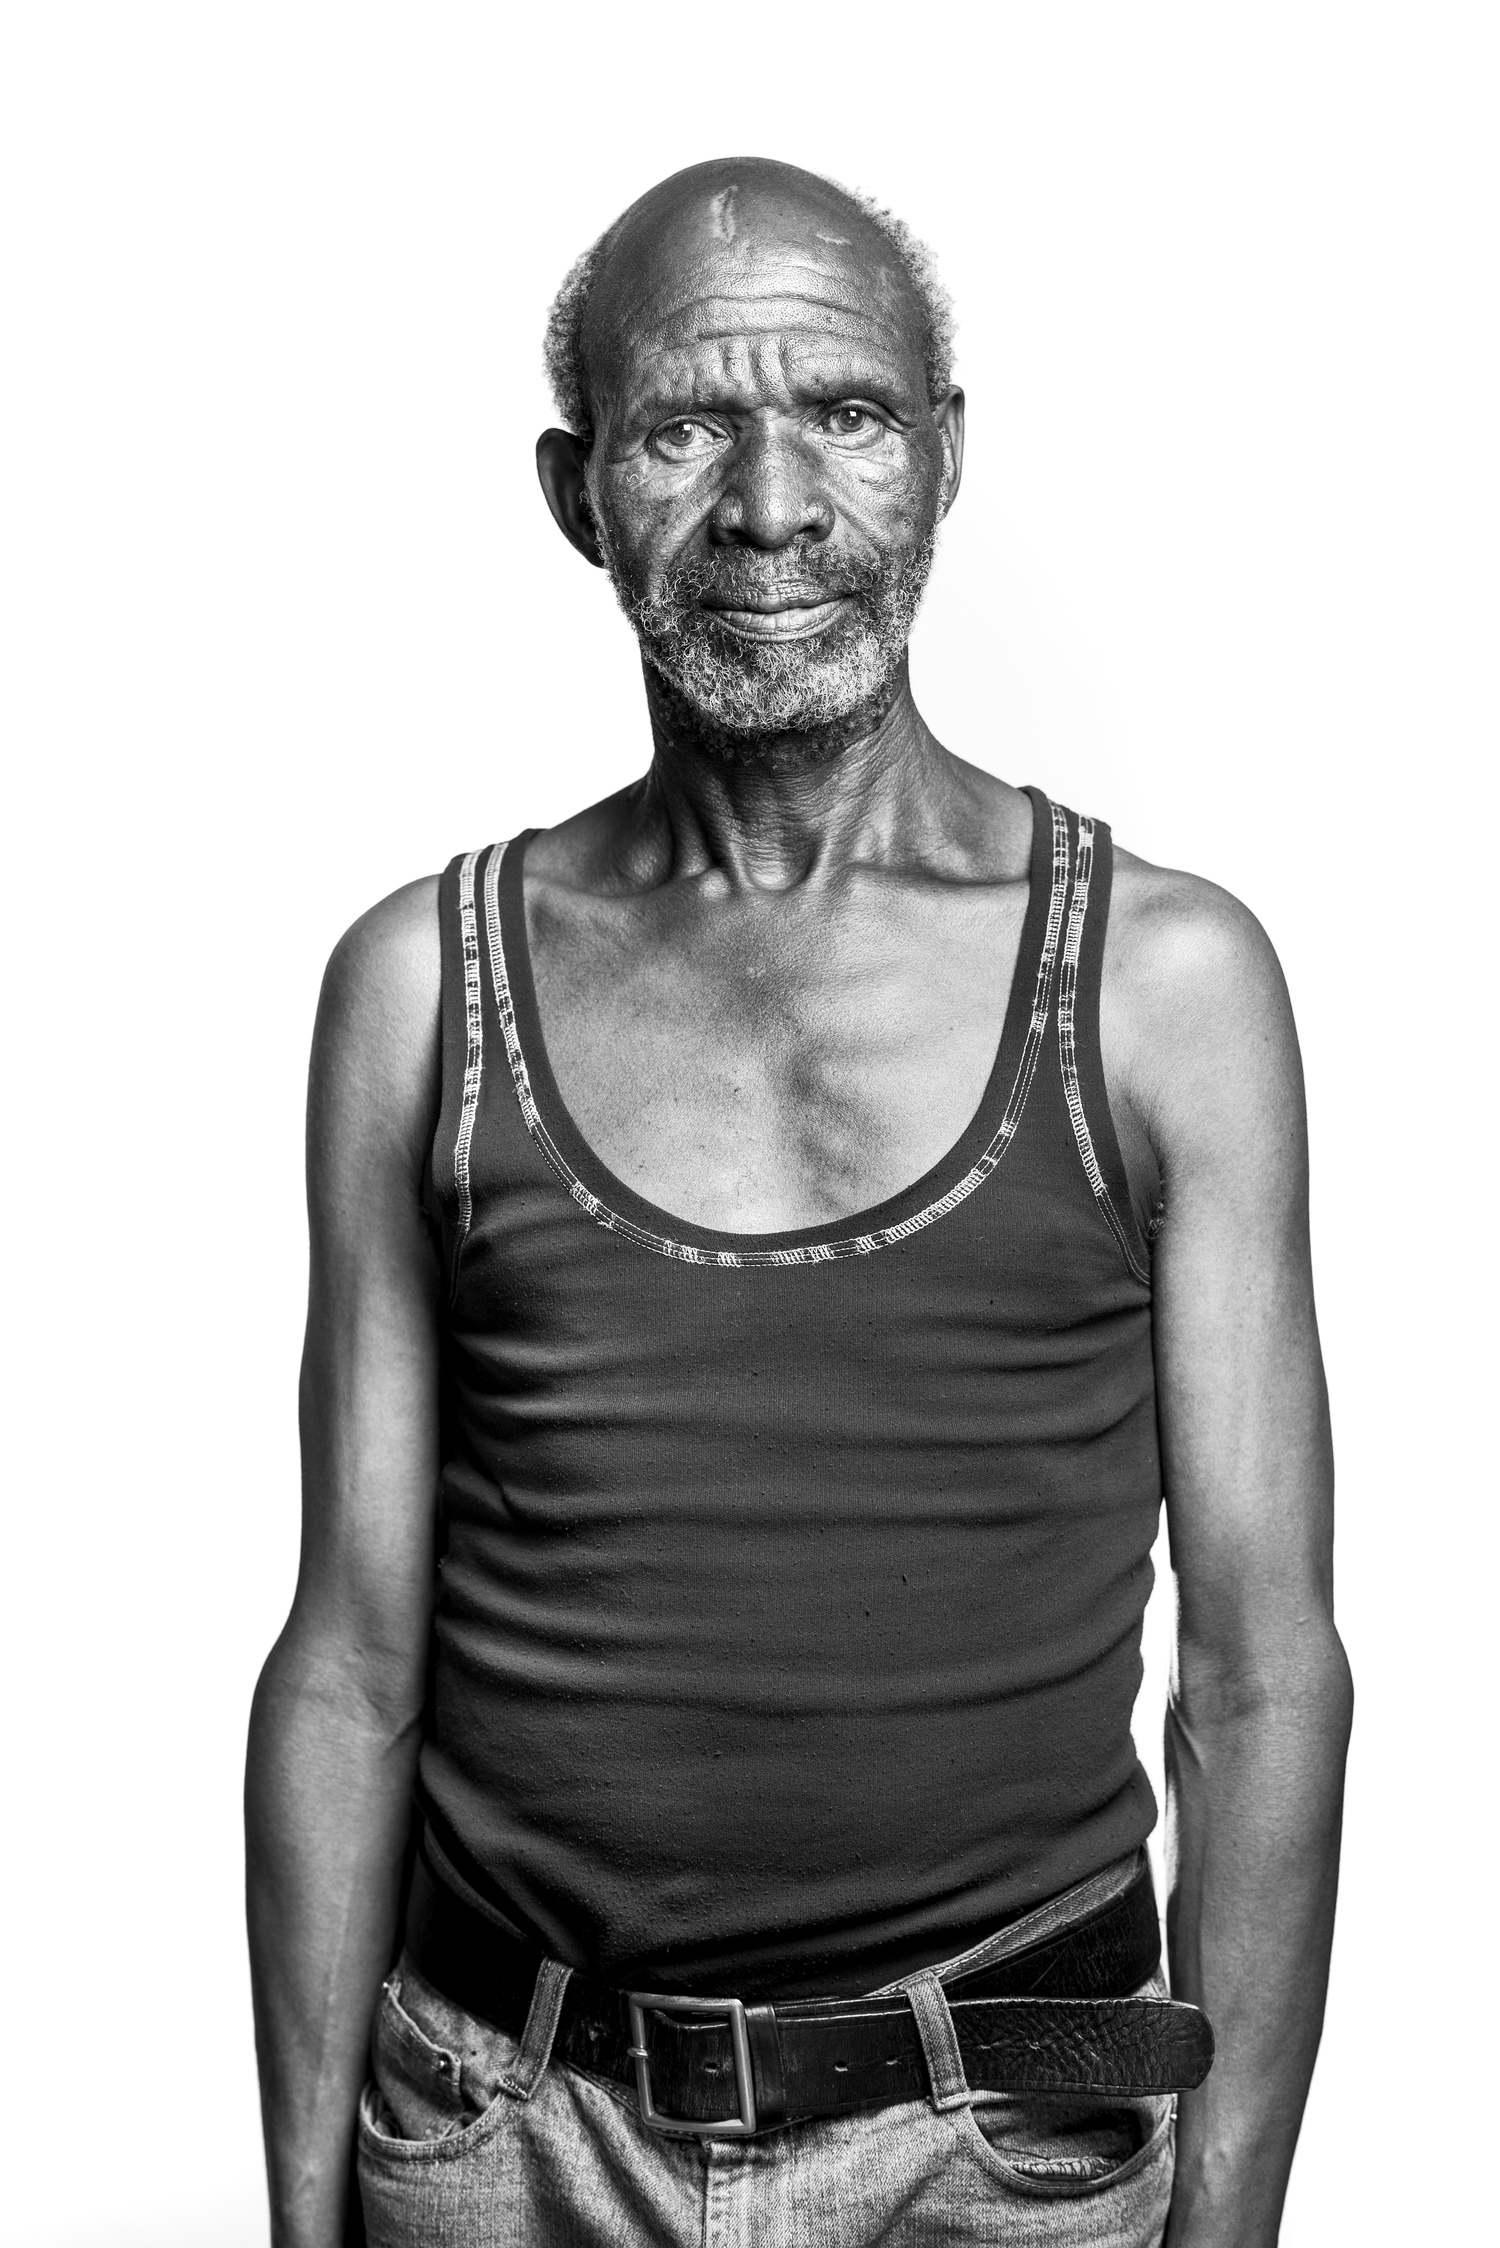 A portrait of Thembekile Mnahenitaken against the white background - 2015